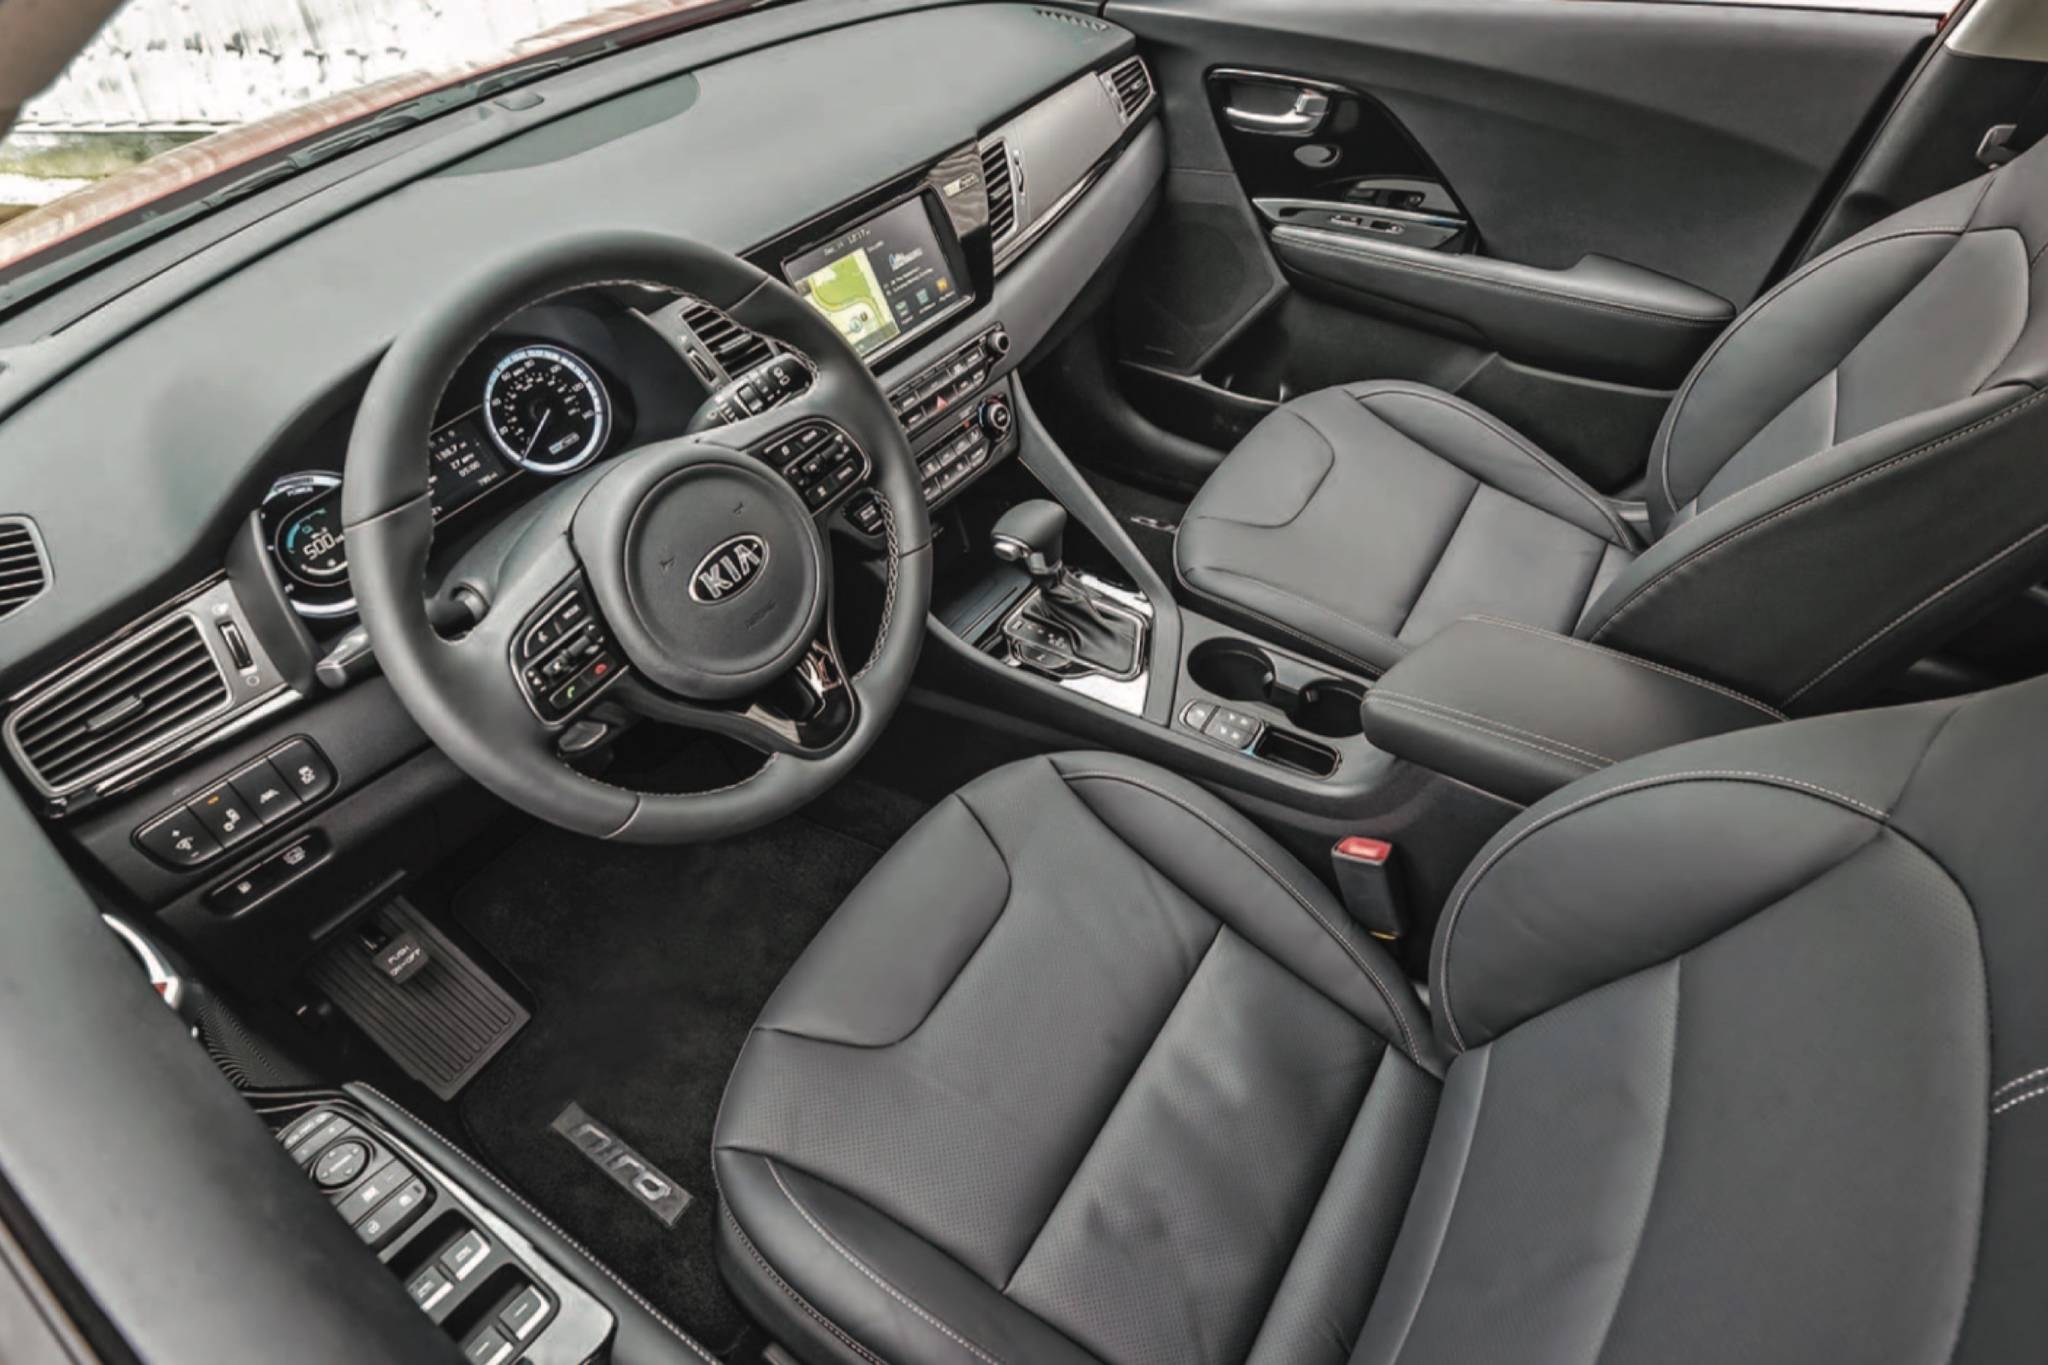 The Niro might be a high-tech machine, but the designers clearly wanted to give the impression of a normal vehicle with familiar features and shapes. It might seem odd that there's an actual shift lever, but this is the hybrid and not the EV model that has a single-speed controller instead of a transmission. Photo: KIA